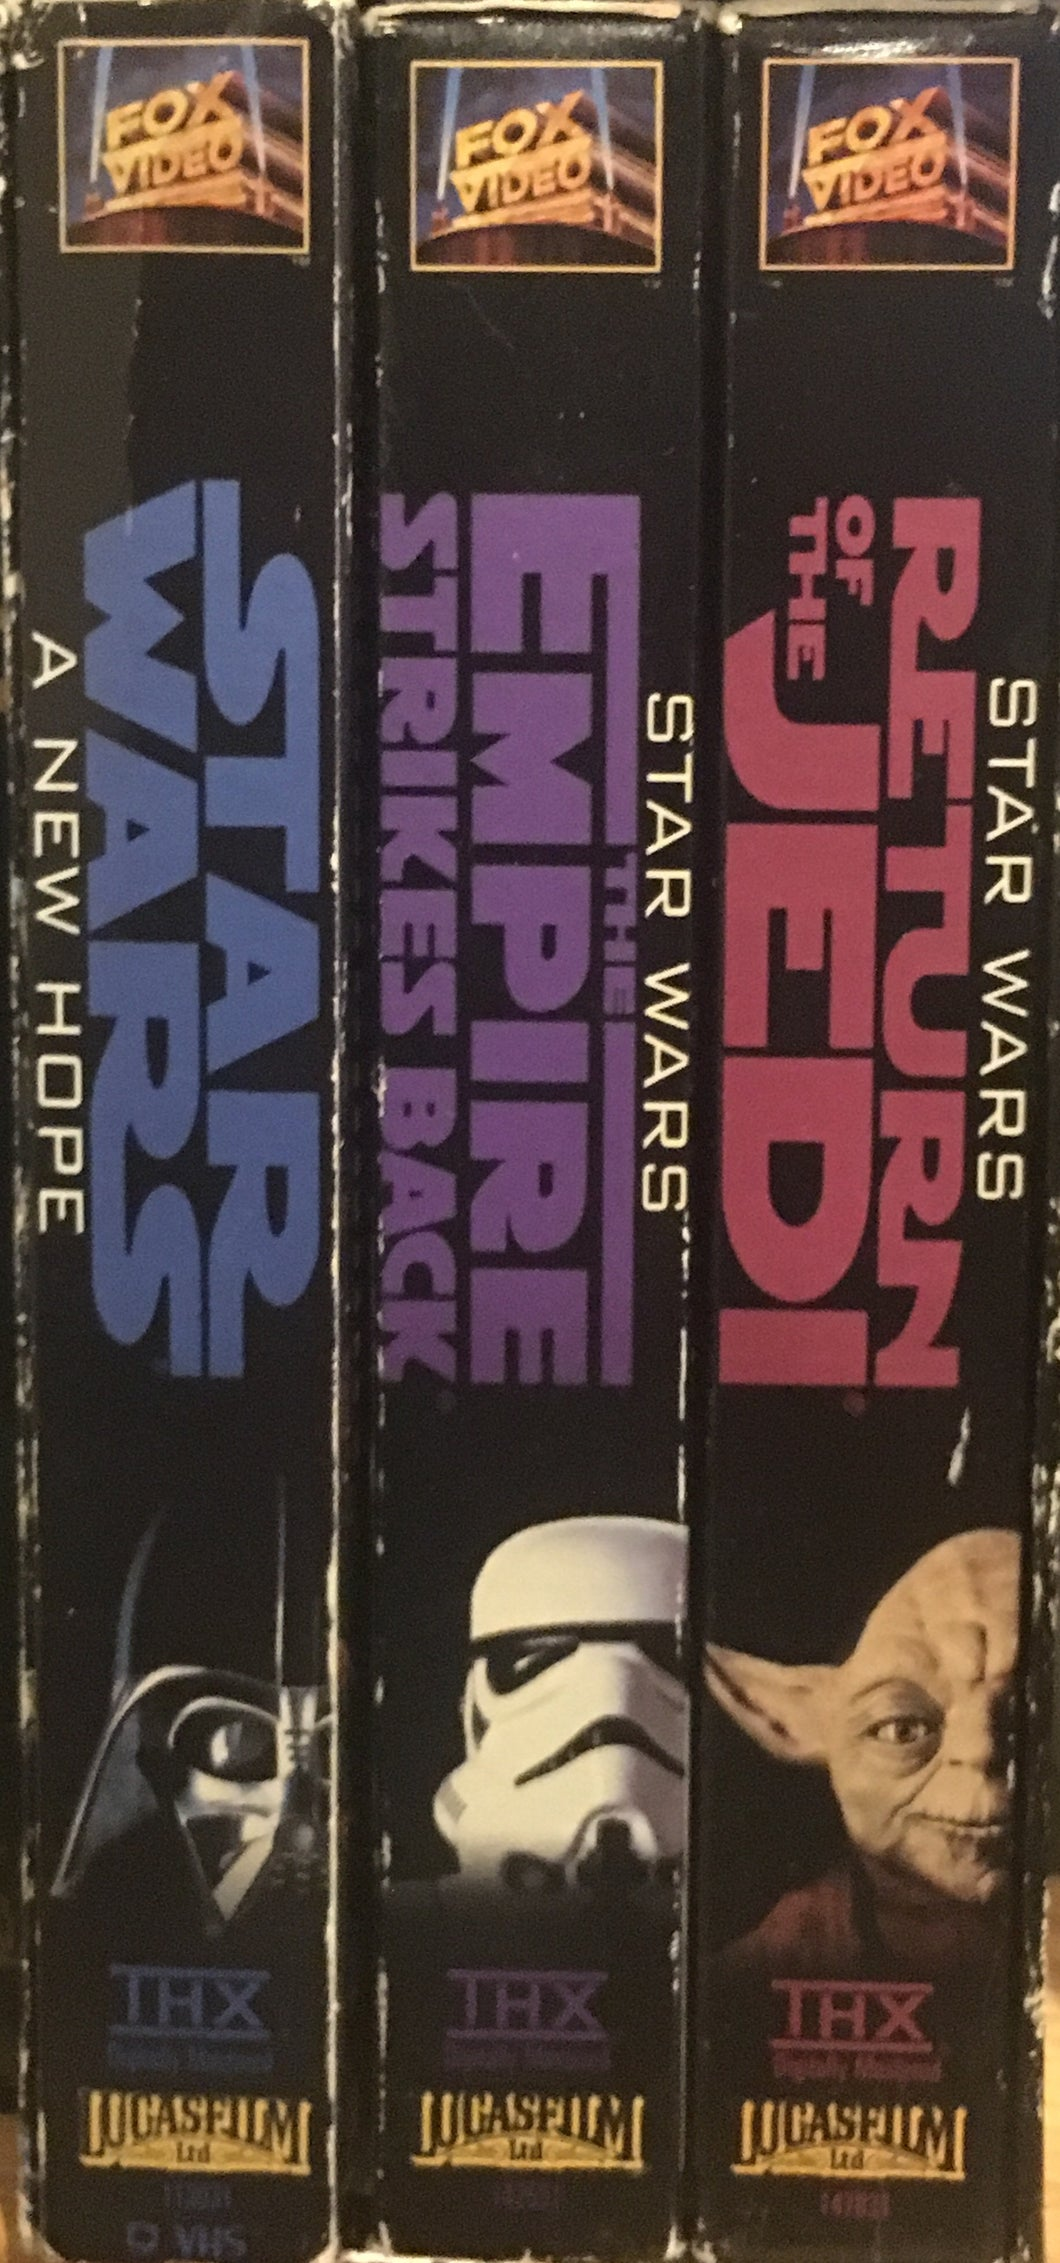 Star Wars Trilogy Less Special VHS